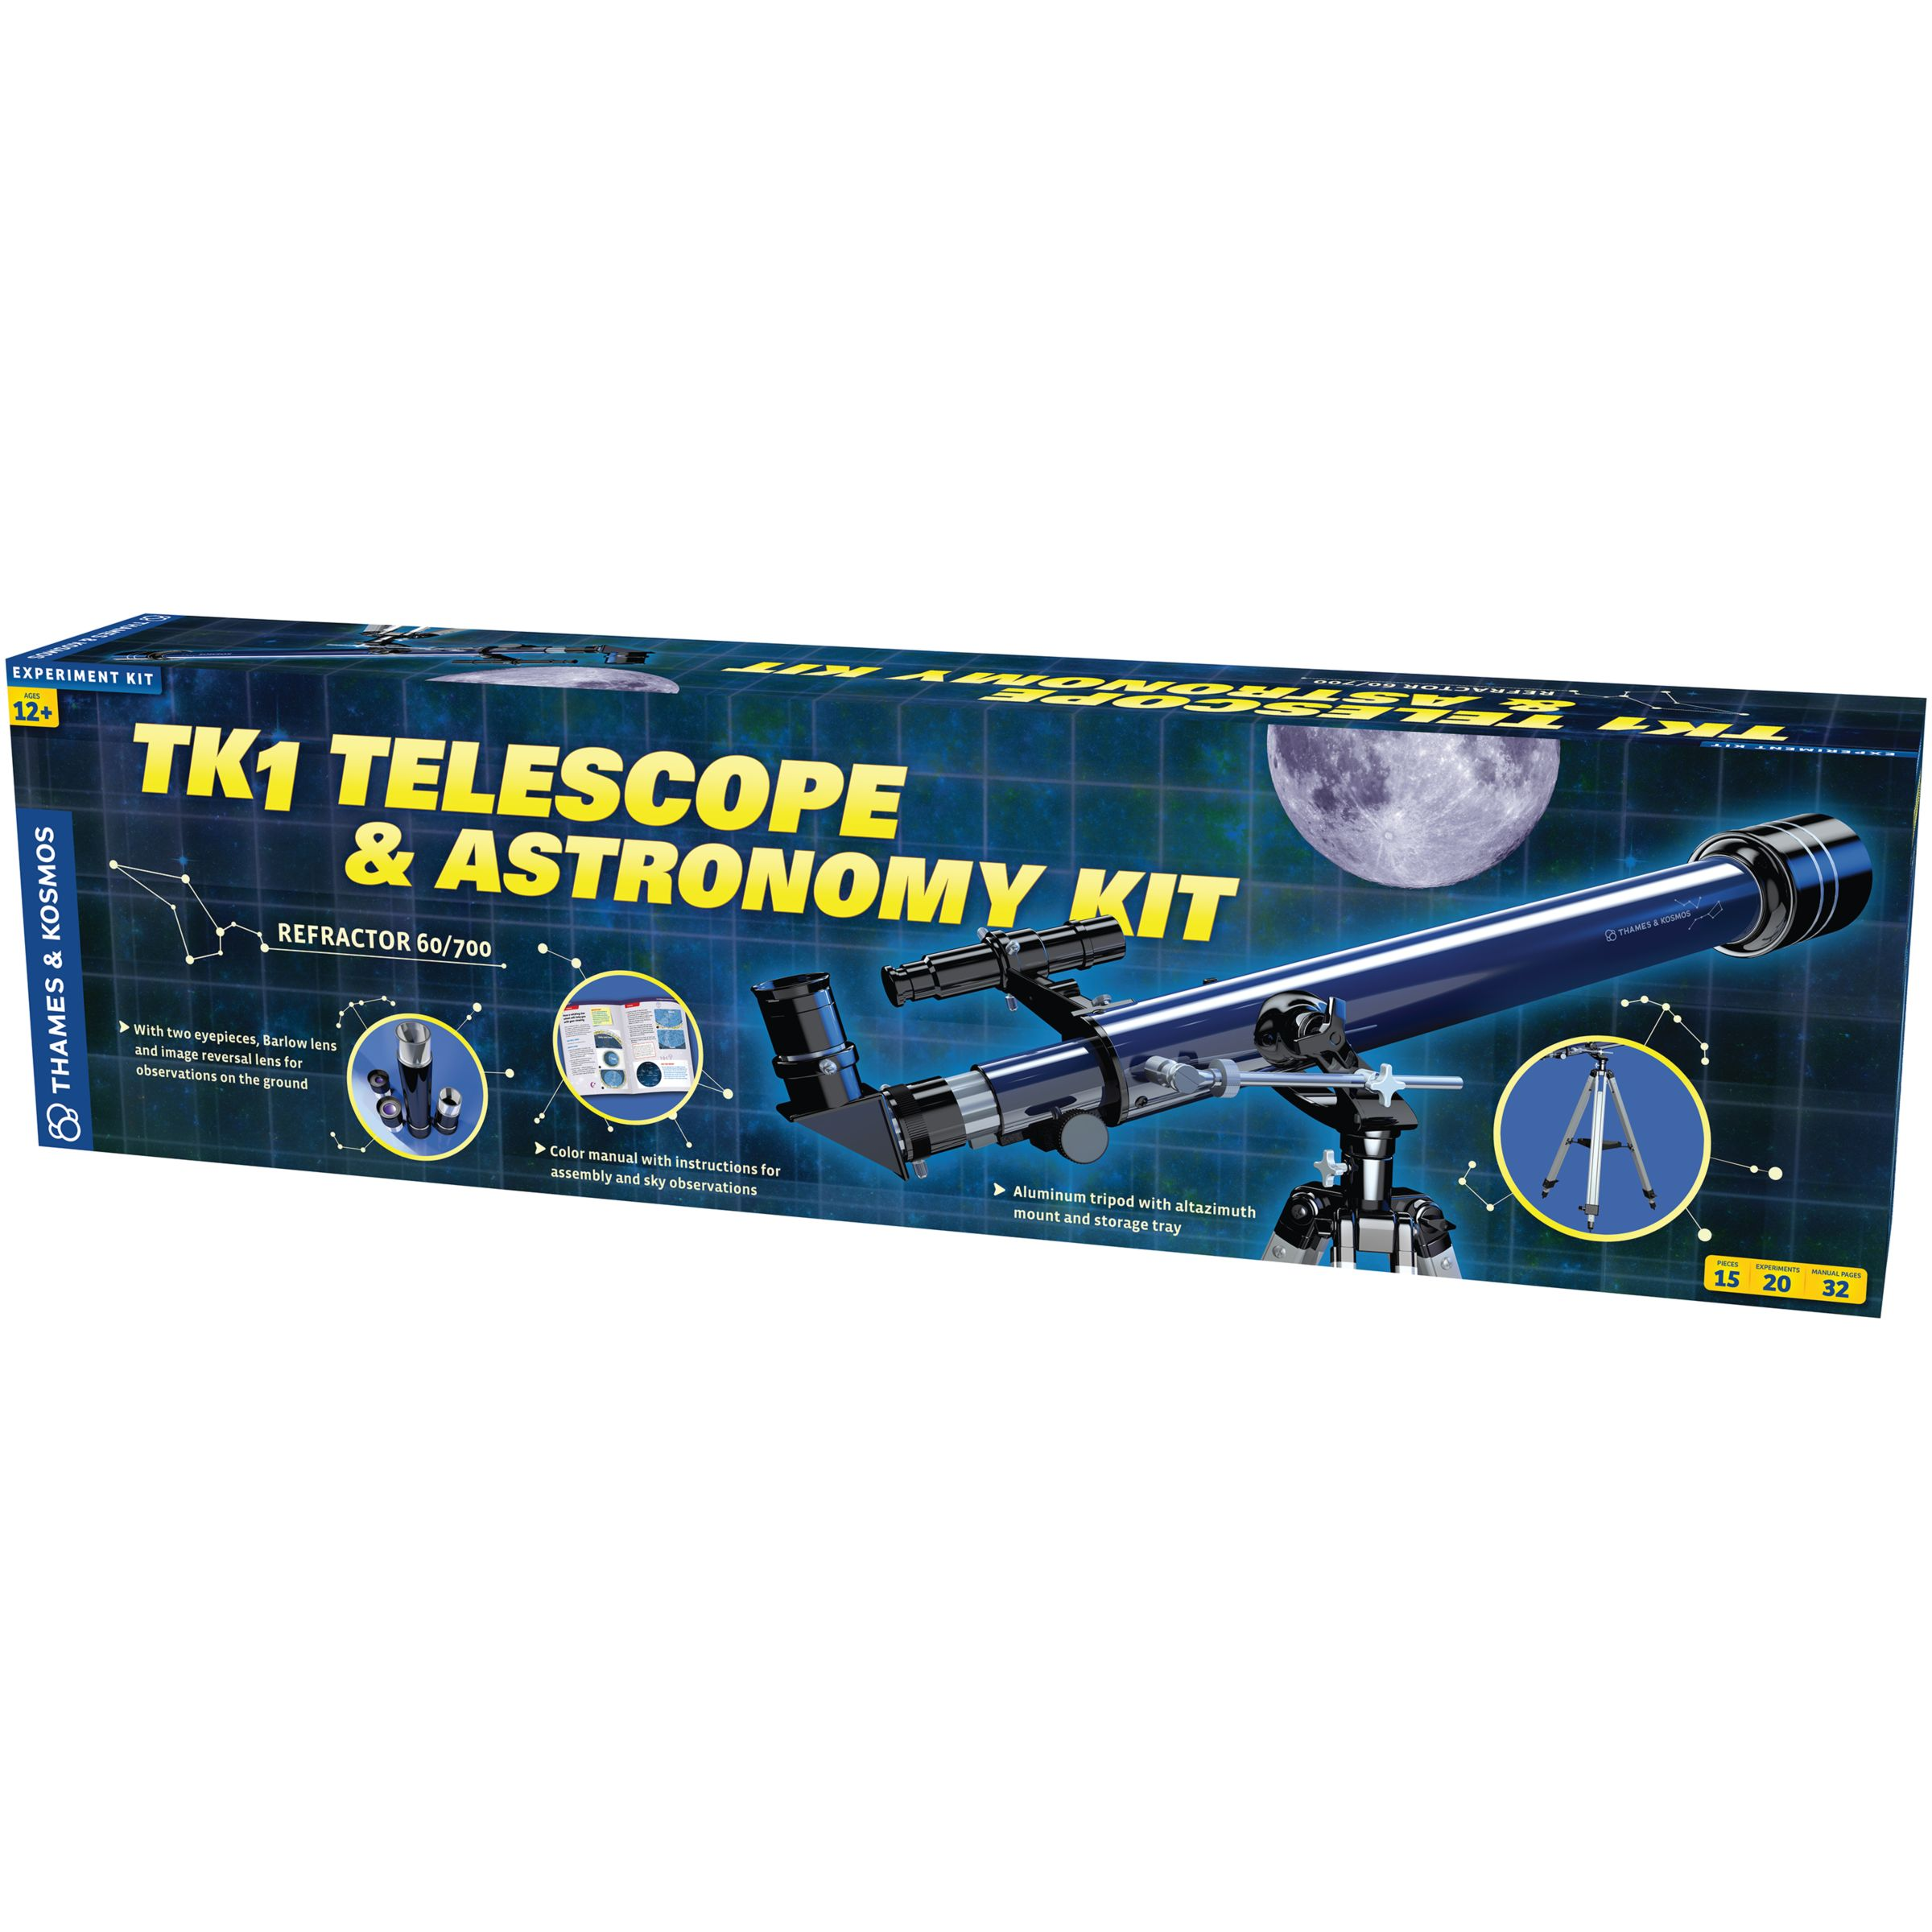 Thames & Kosmos Thames & Kosmos Telescope and Astronomy Kit